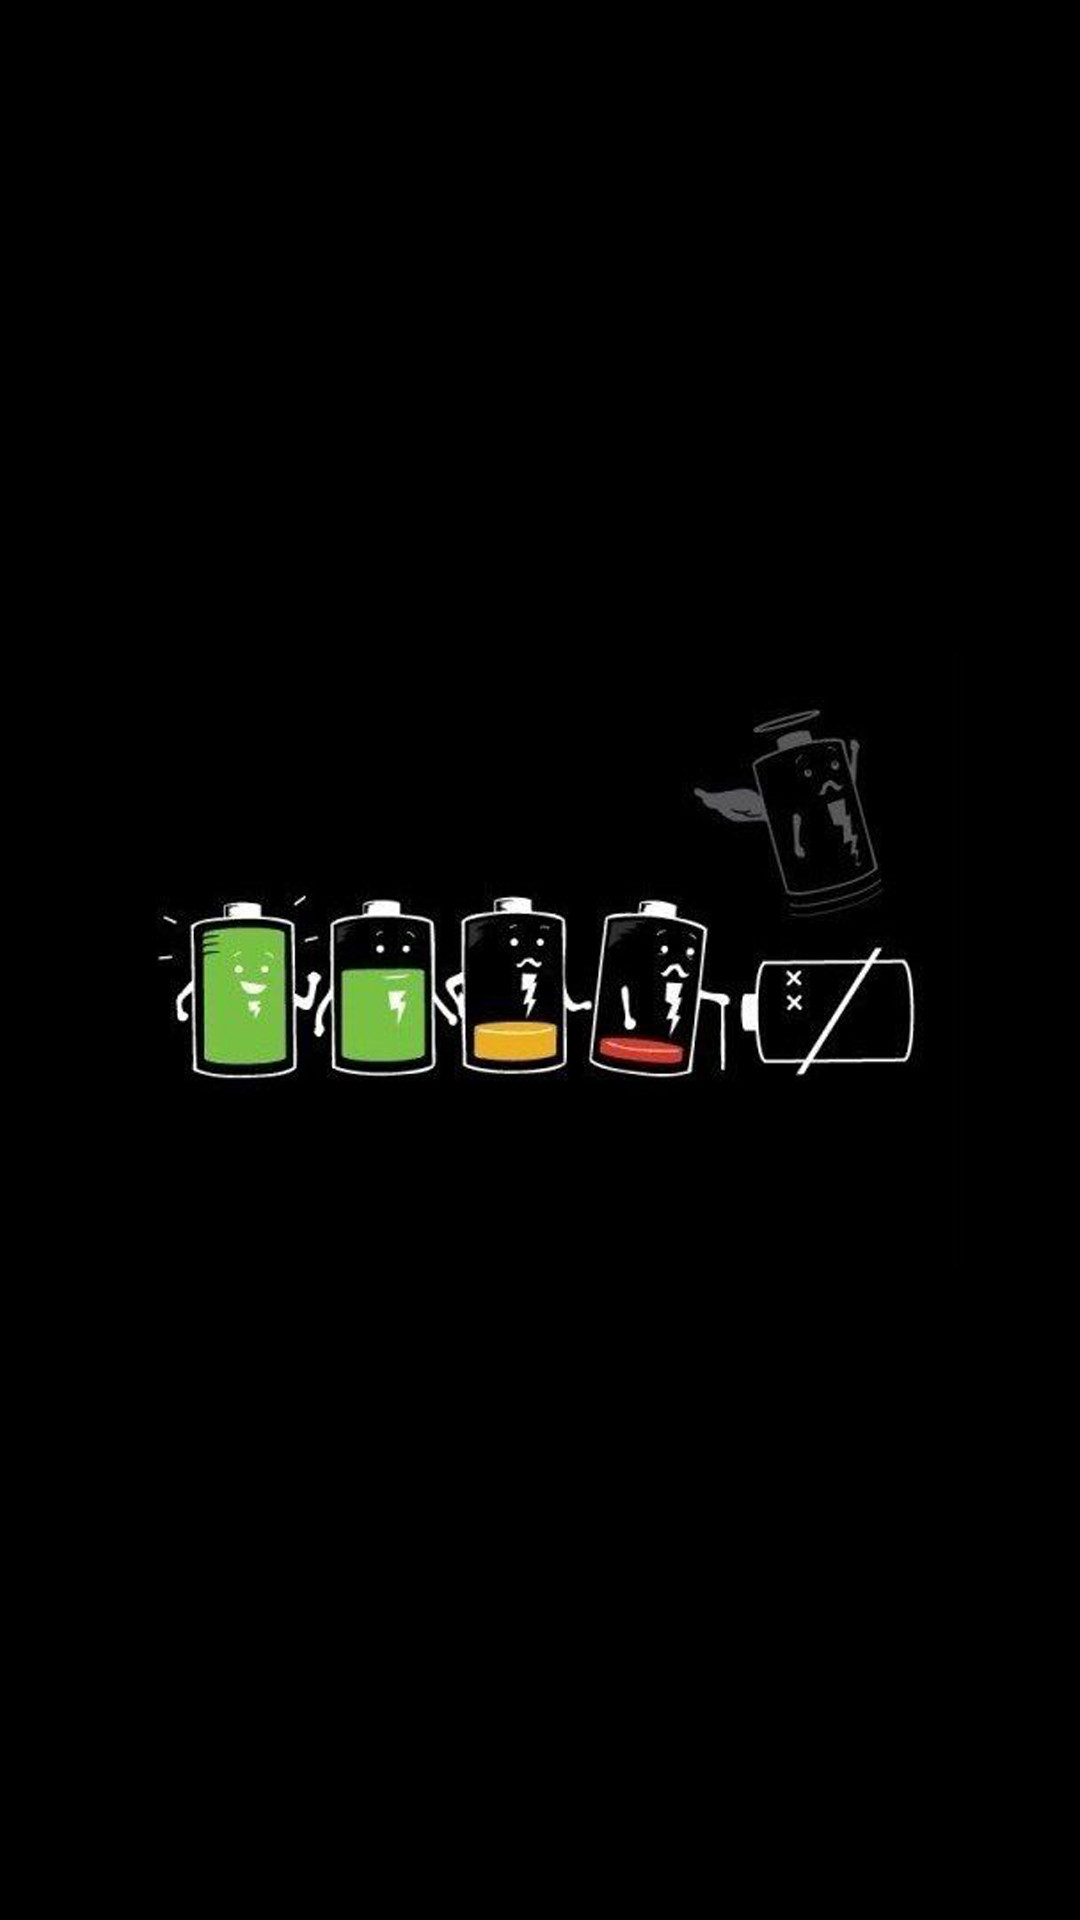 The Battery Life. Funny cartoon art iPhone wallpapers. Tap to see more  iPhone backgrounds